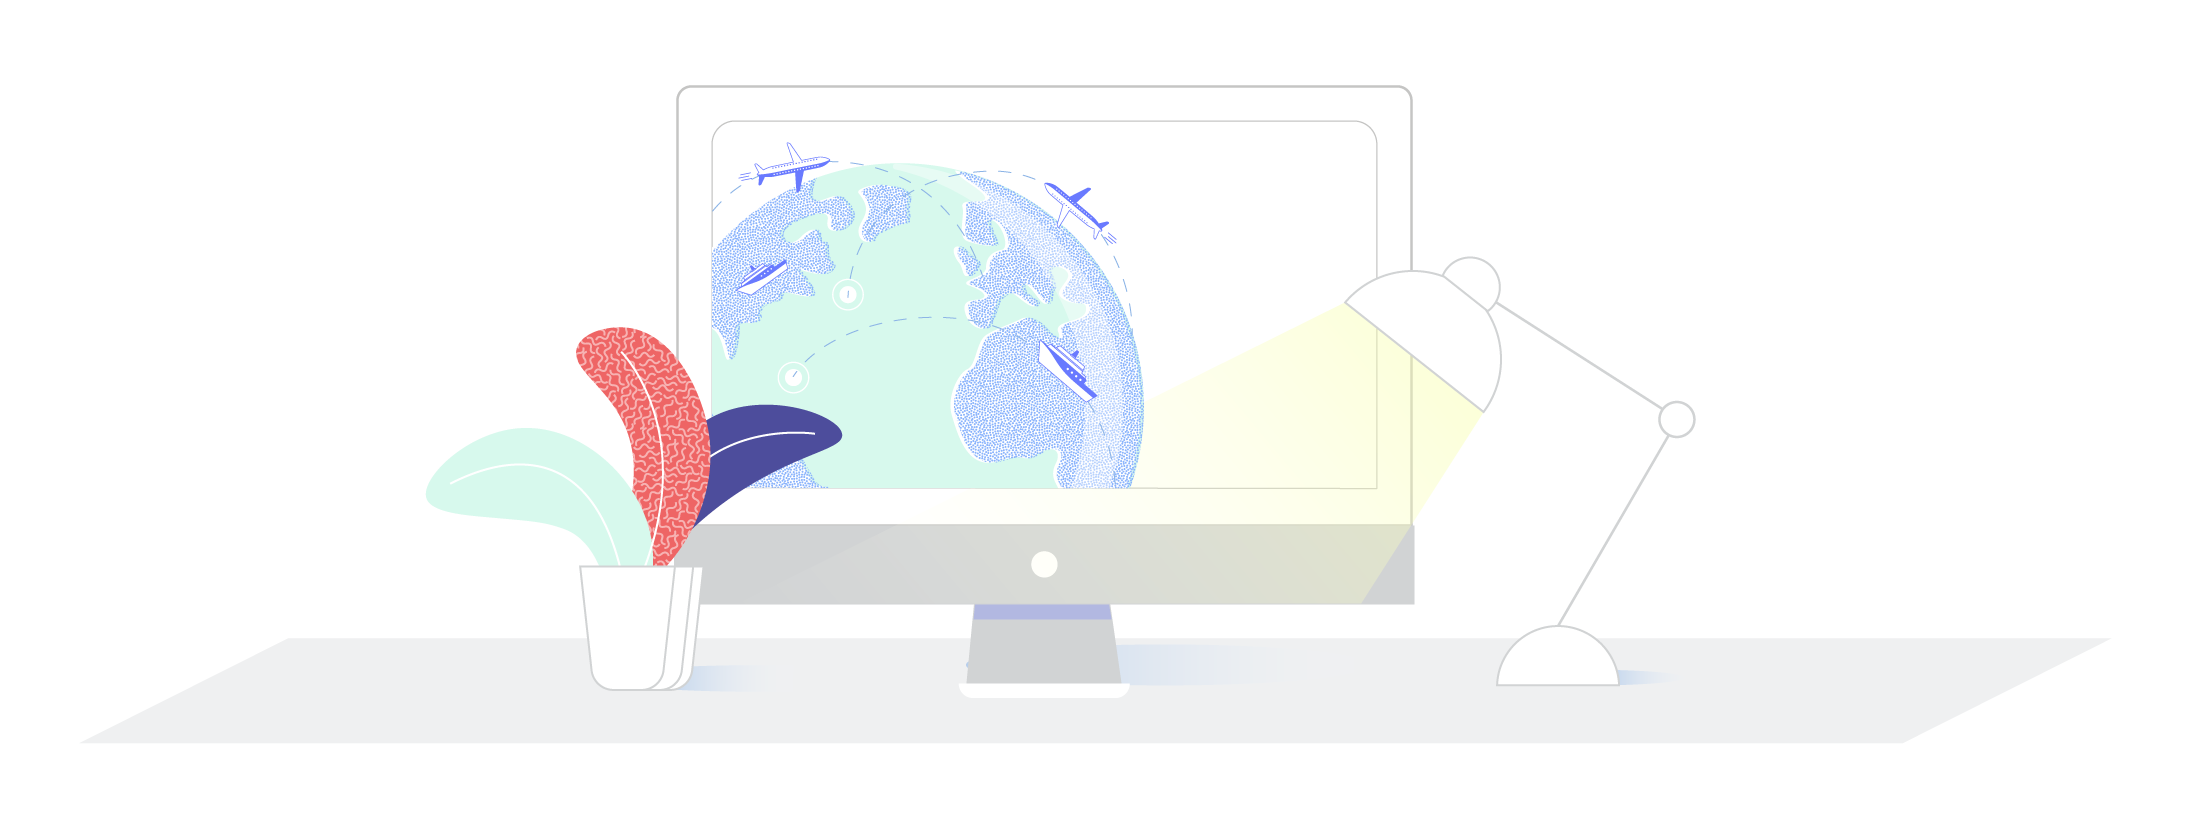 Growing Your Online Business Across Borders: A Report